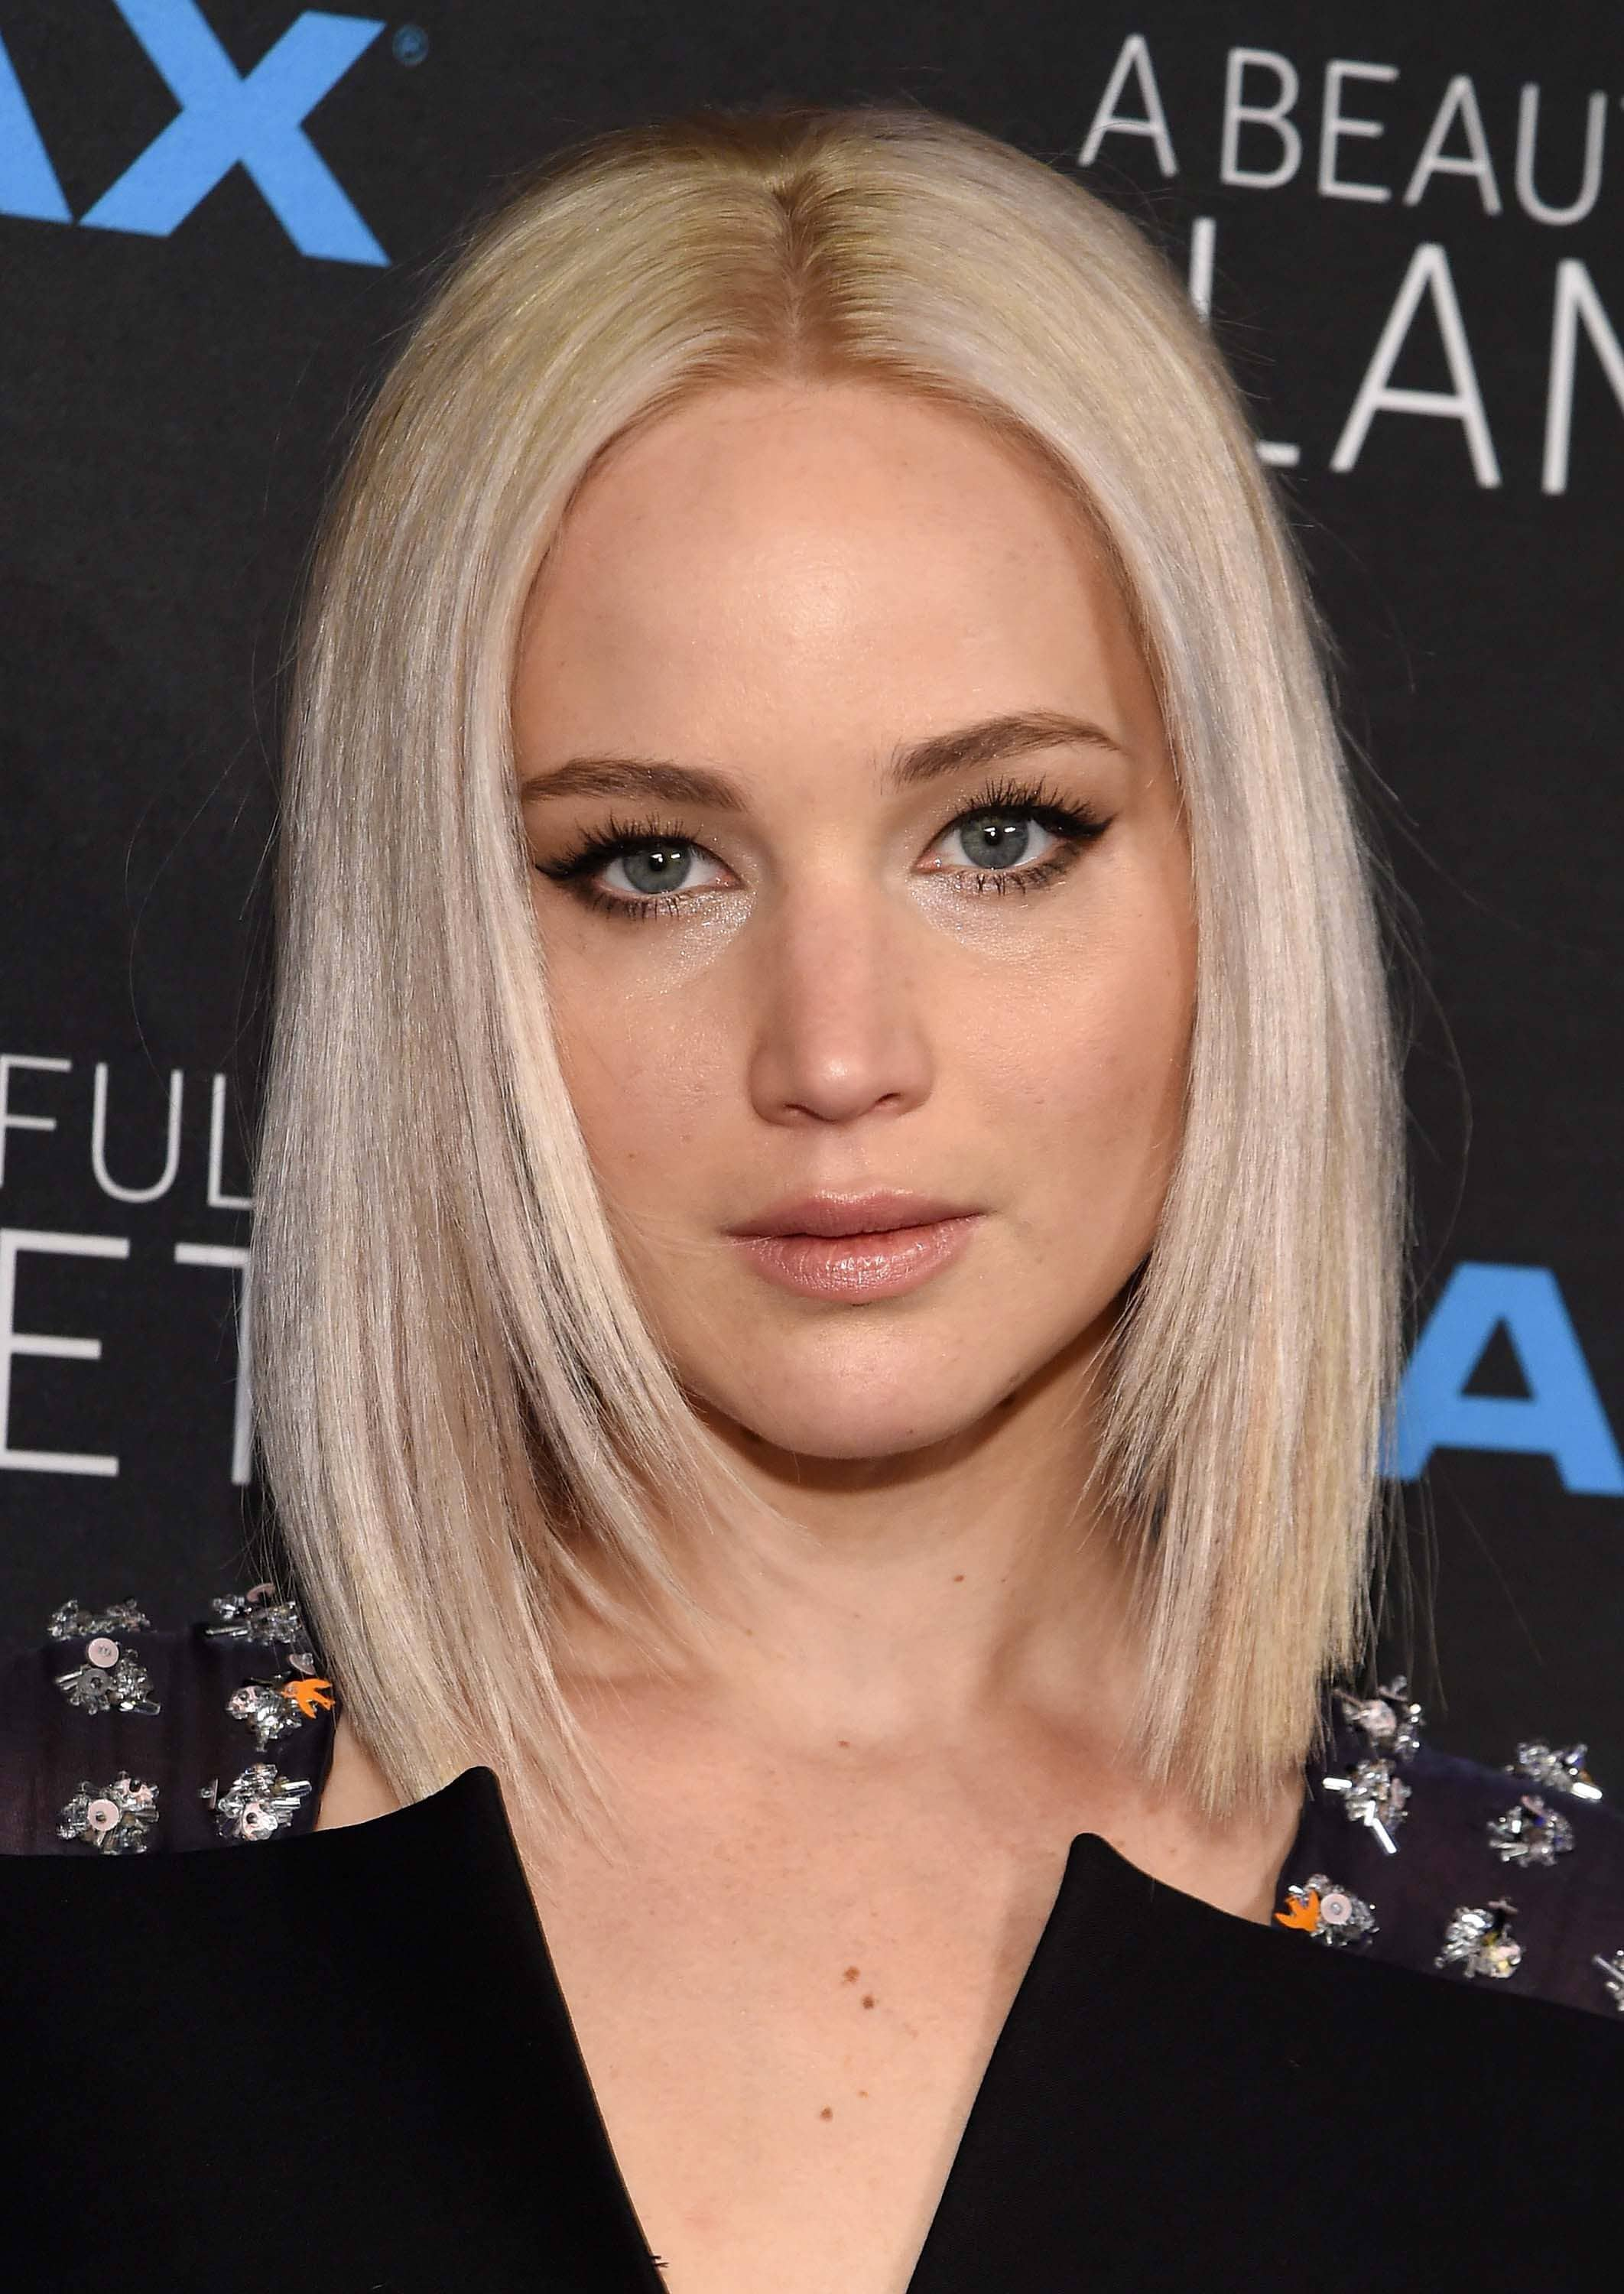 21 incredible platinum blonde hairstyles youre sure to love platinum blonde hair jennifer lawrence urmus Image collections